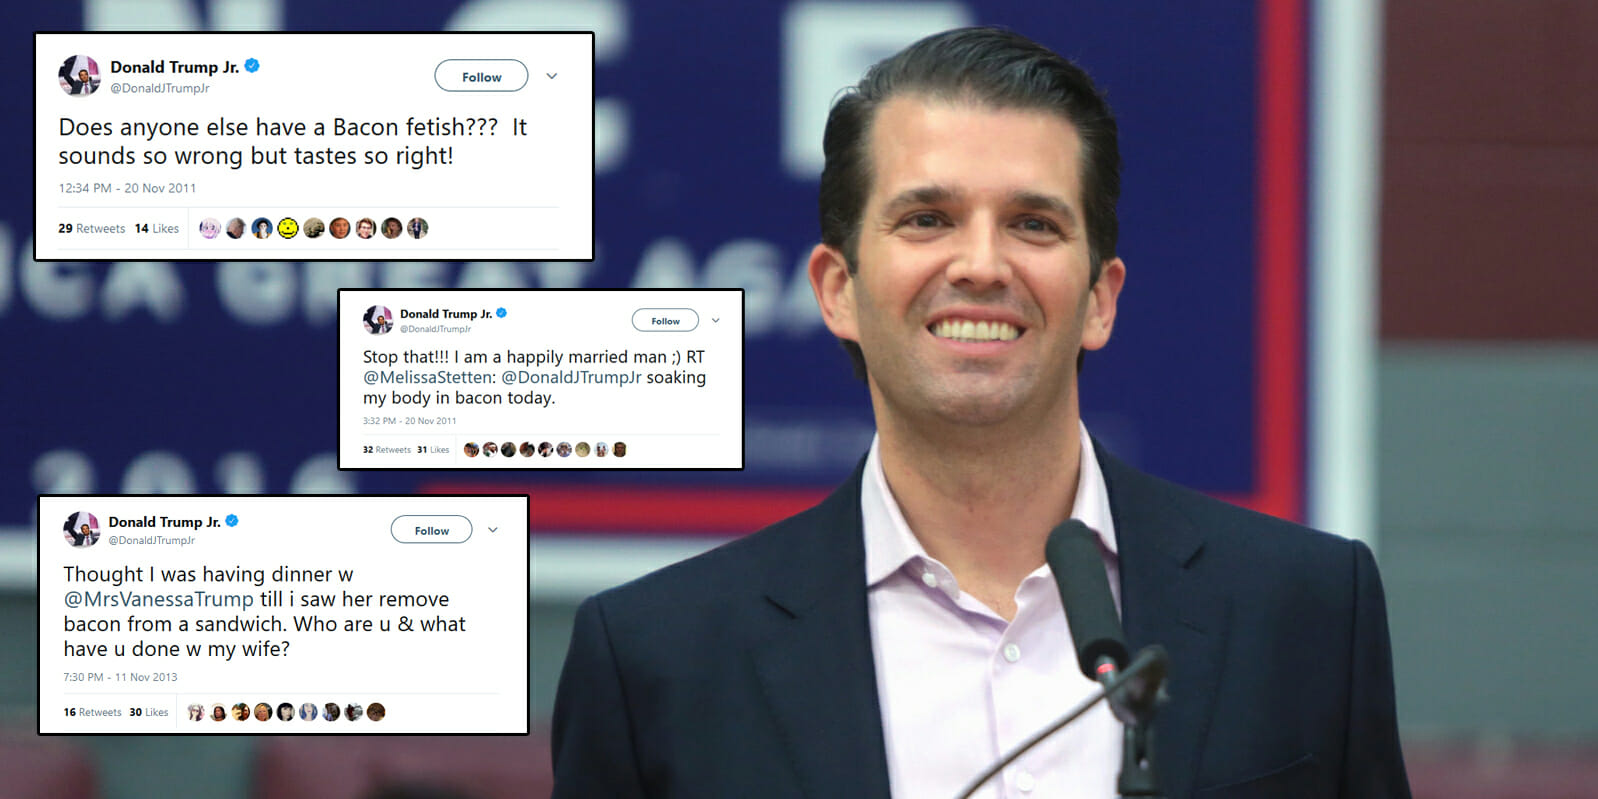 A former model shared screenshots from Donald Trump Jr. on Thursday night showing a strange bacon-fueled message from the businessman–but a quick scan of his Twitter shows that his 'bacon fetish' and love for the meat has been brought up a lot.